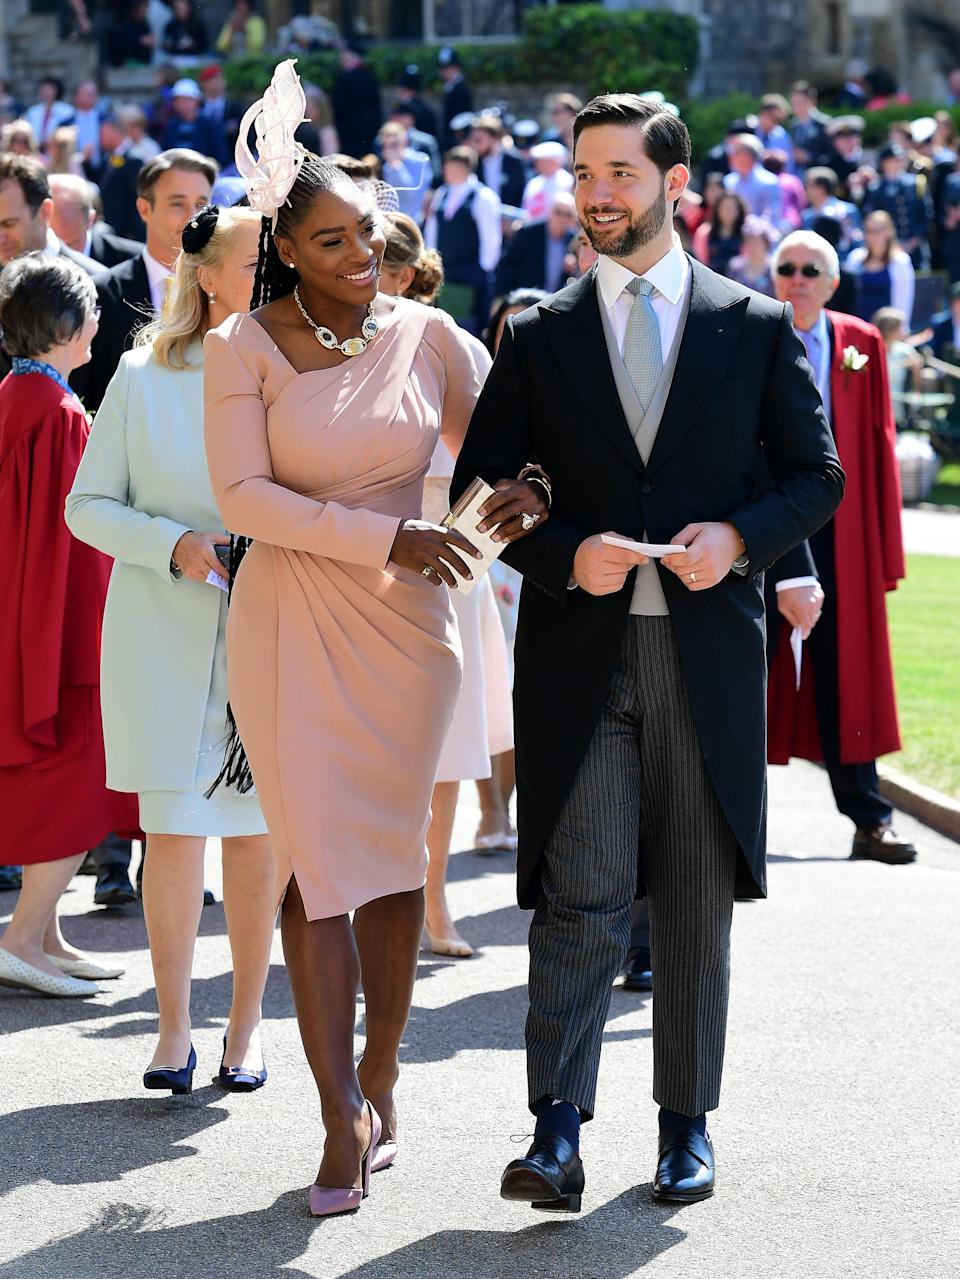 Serena and her husband Alexis at the royal wedding [Photo: Getty]